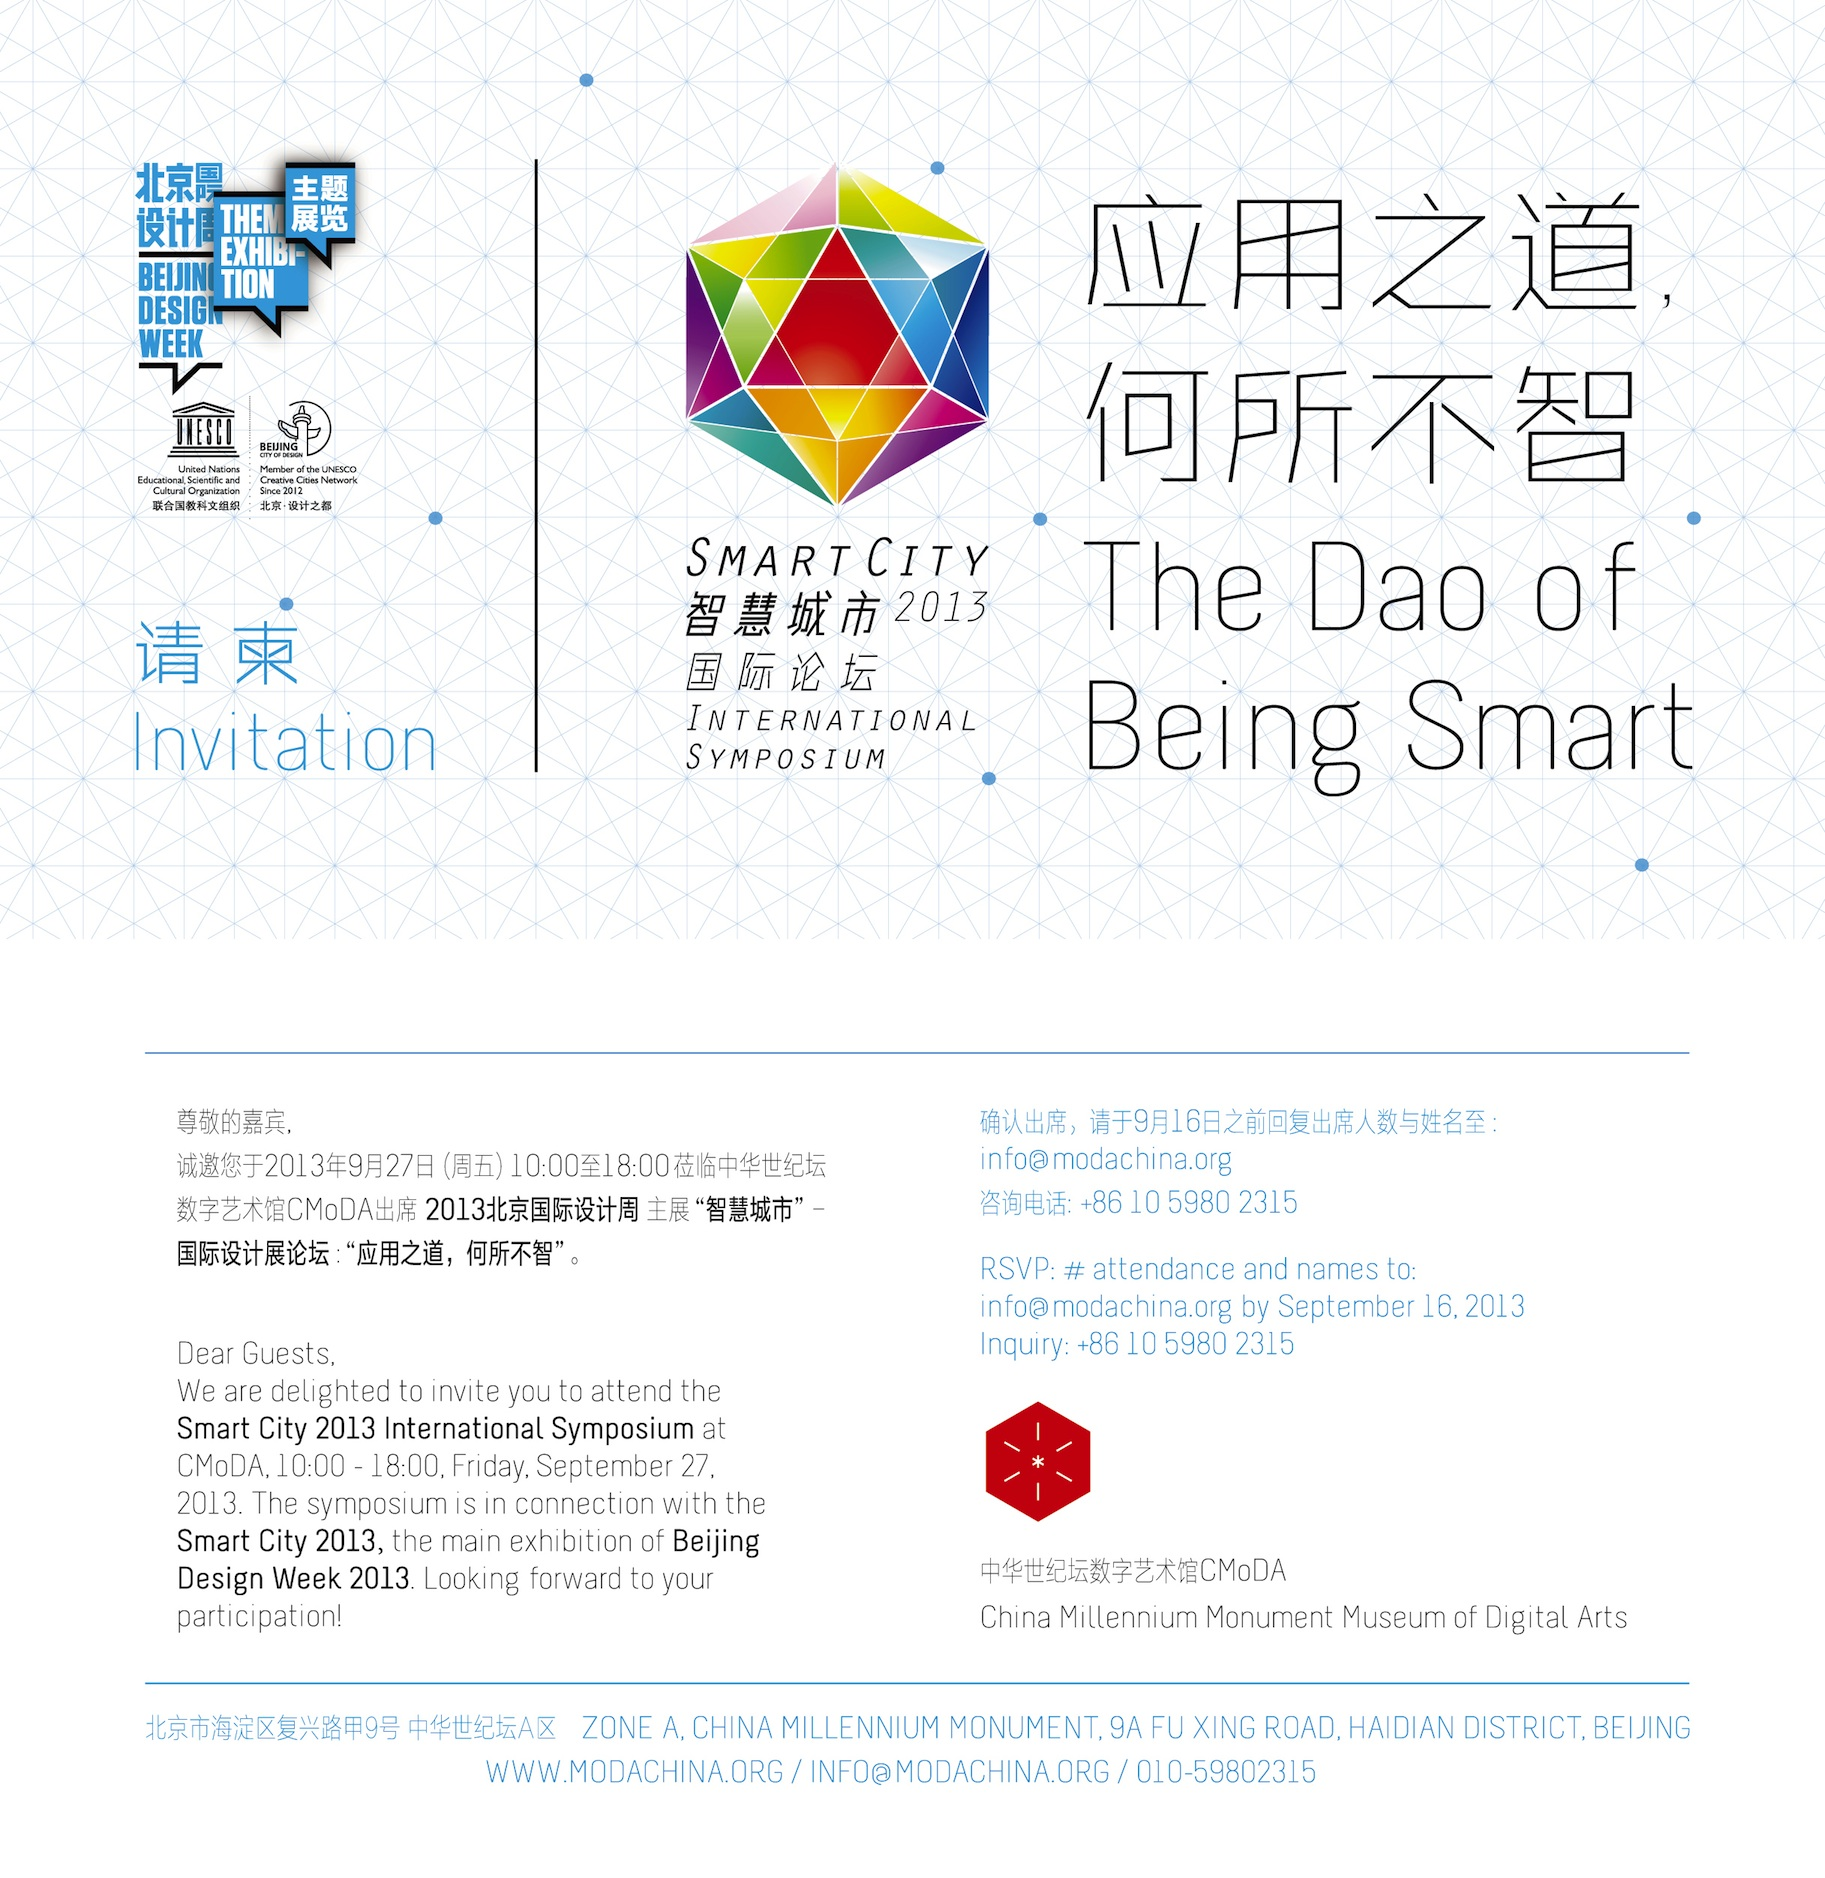 Invitation Smart City symposium 27 Sept. 2013 at CMoDA Beijing